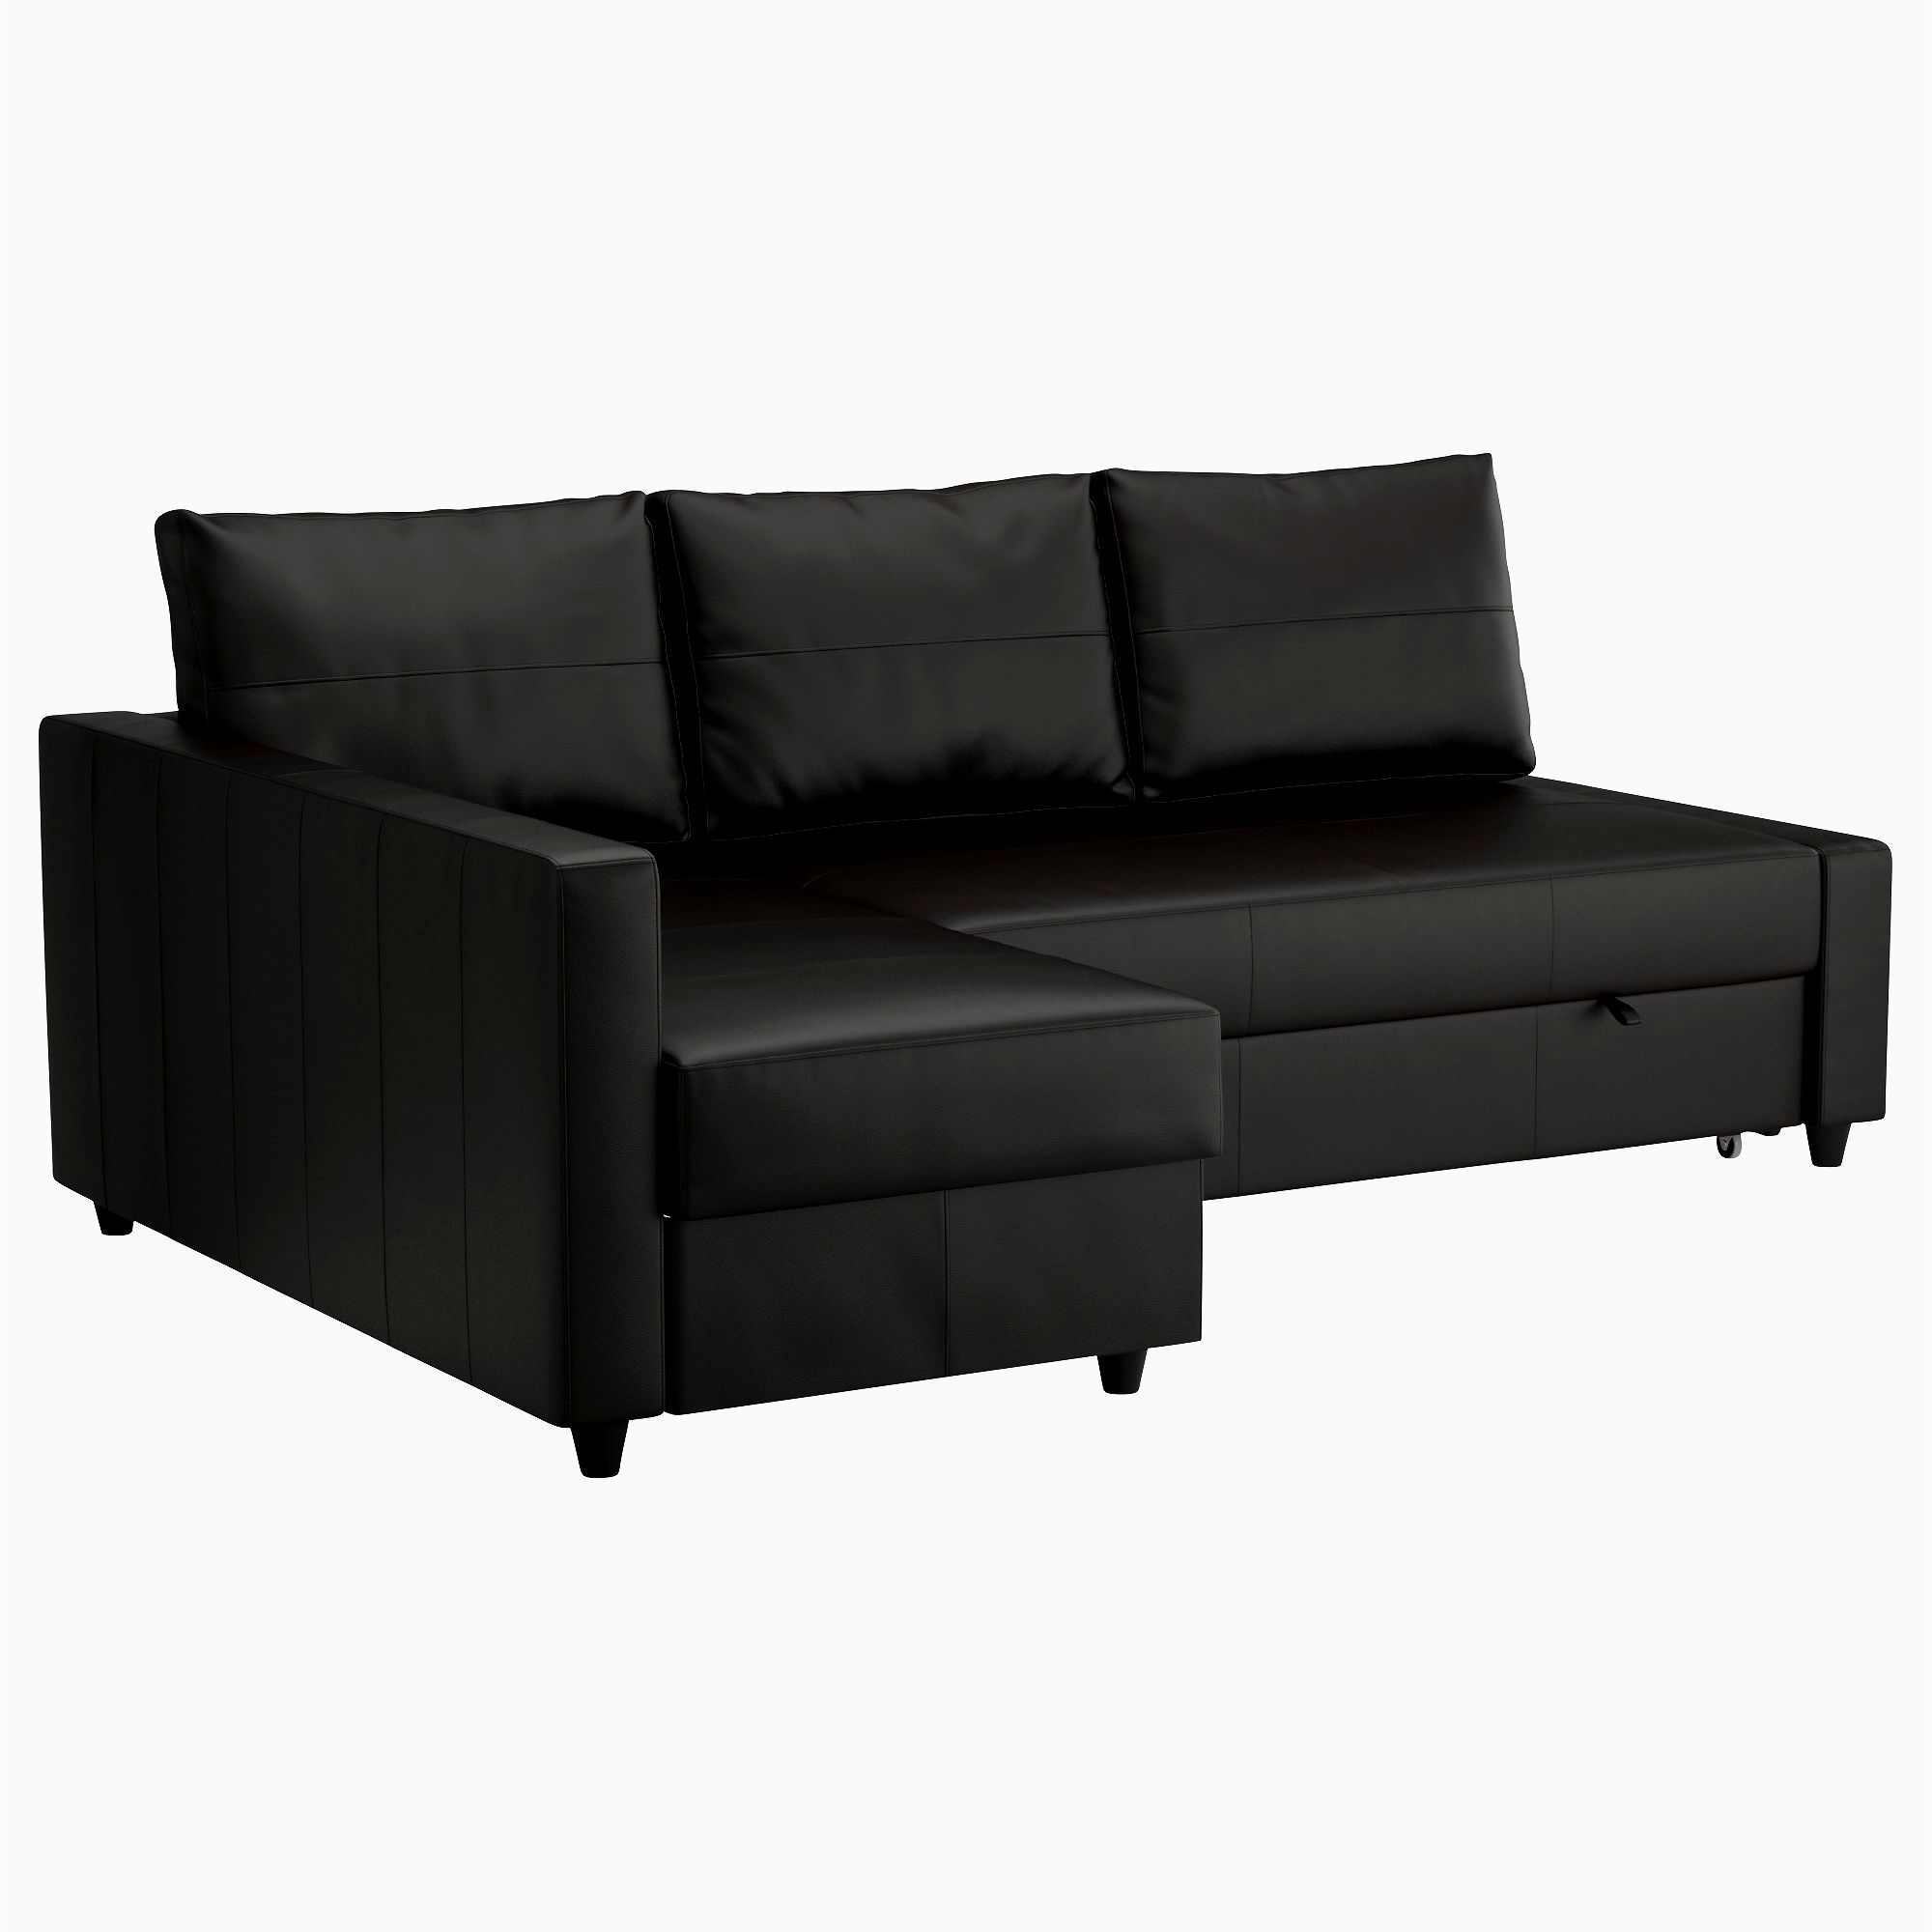 lovely sleeper sofa with chaise decoration-Fancy Sleeper sofa with Chaise Layout